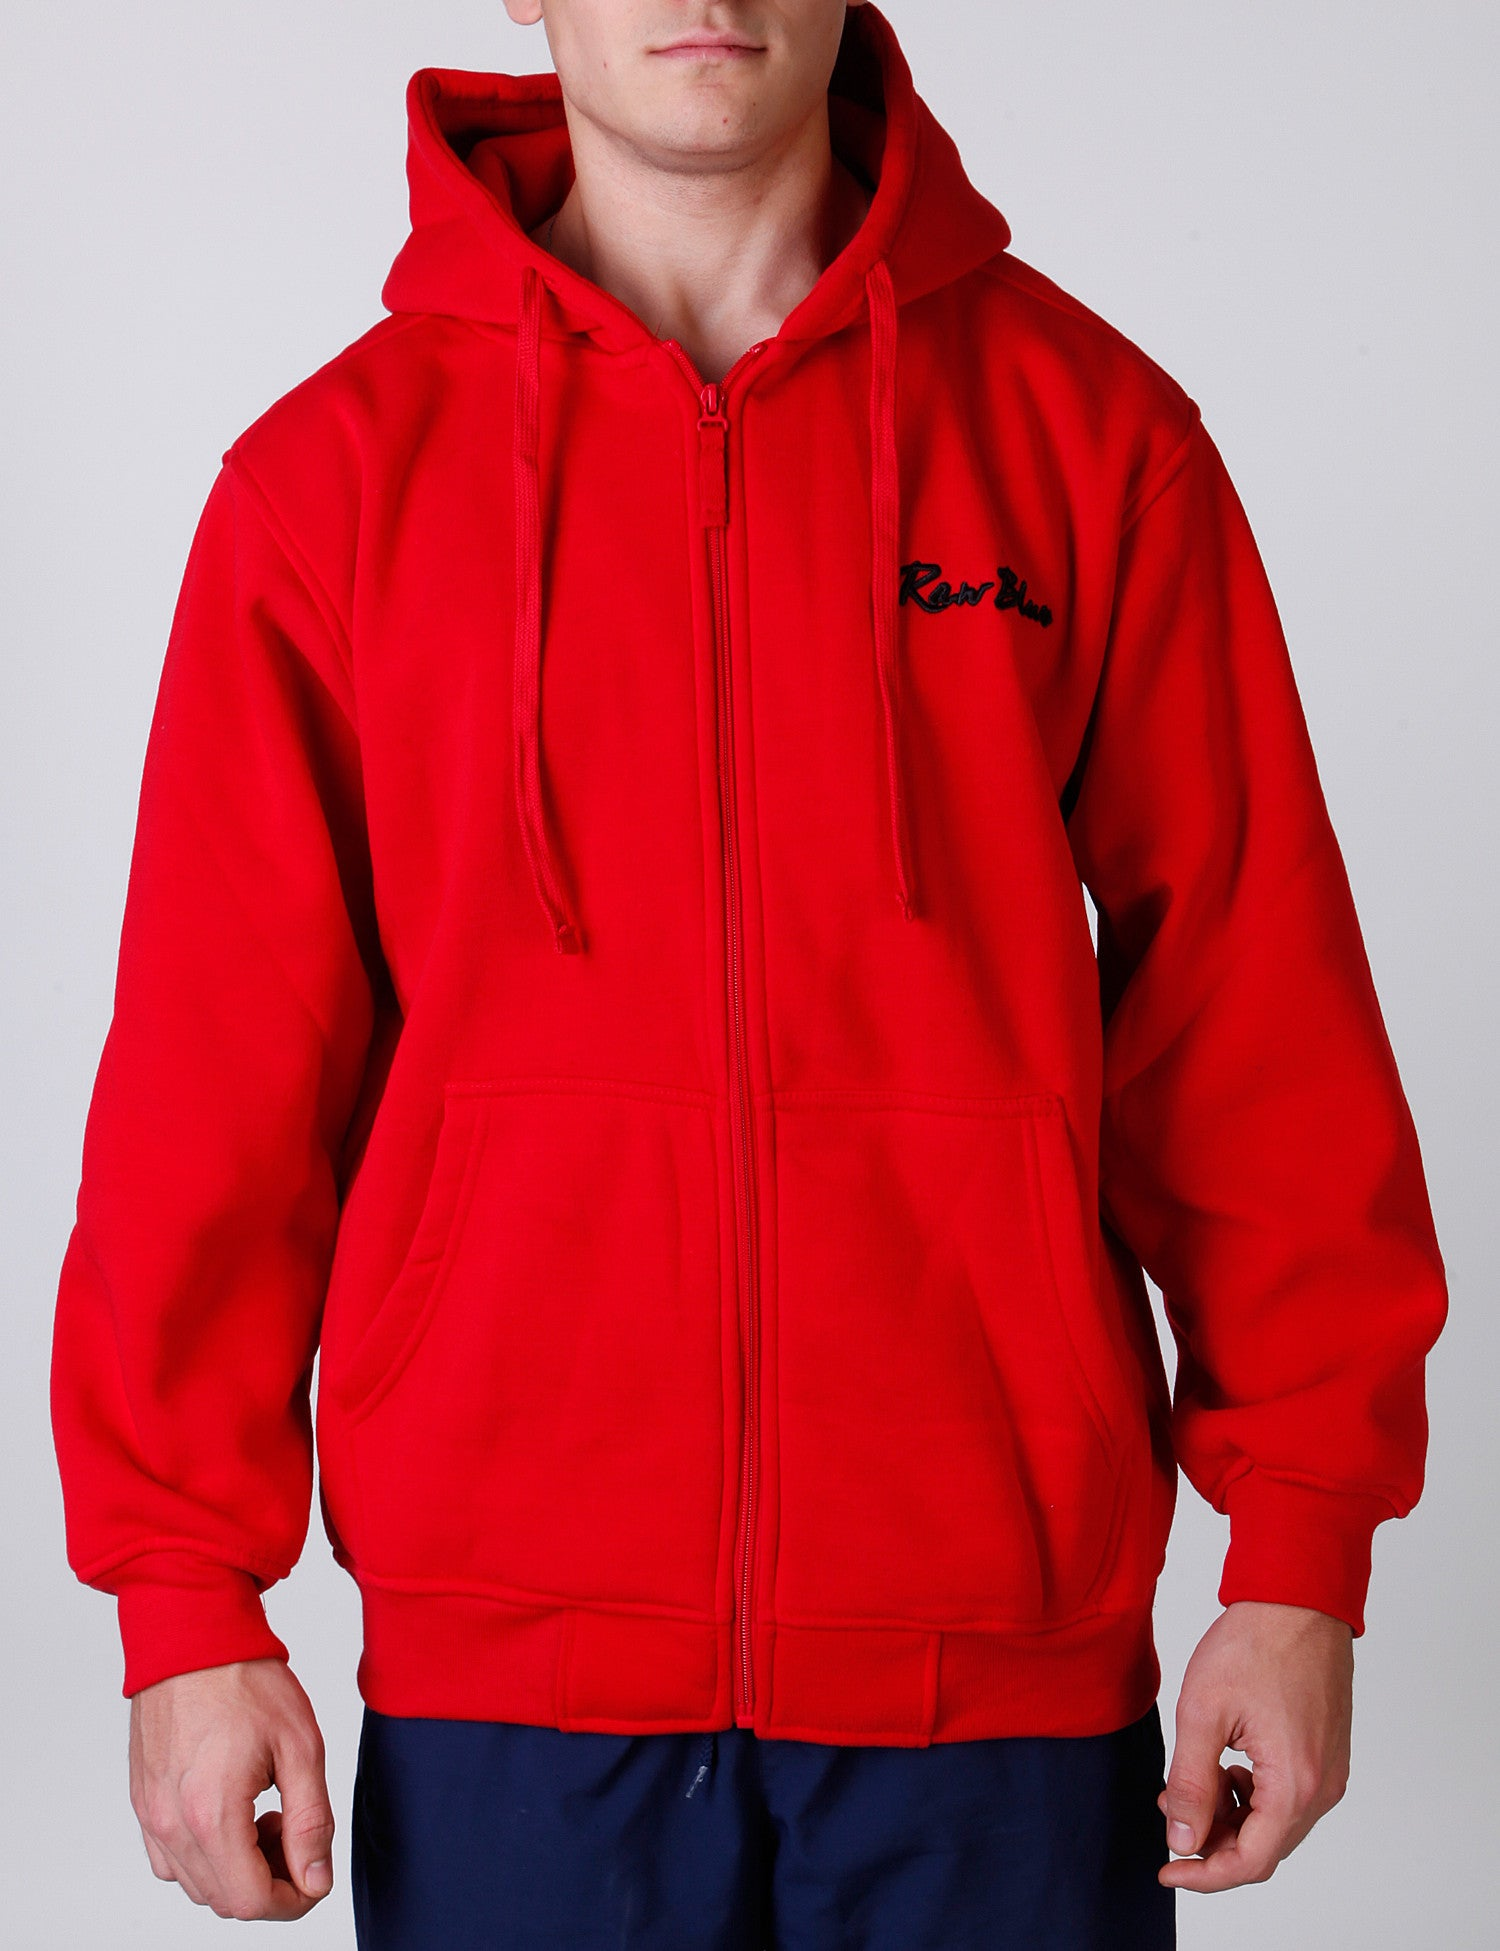 Signature Zip Hoody EF-4572 Red